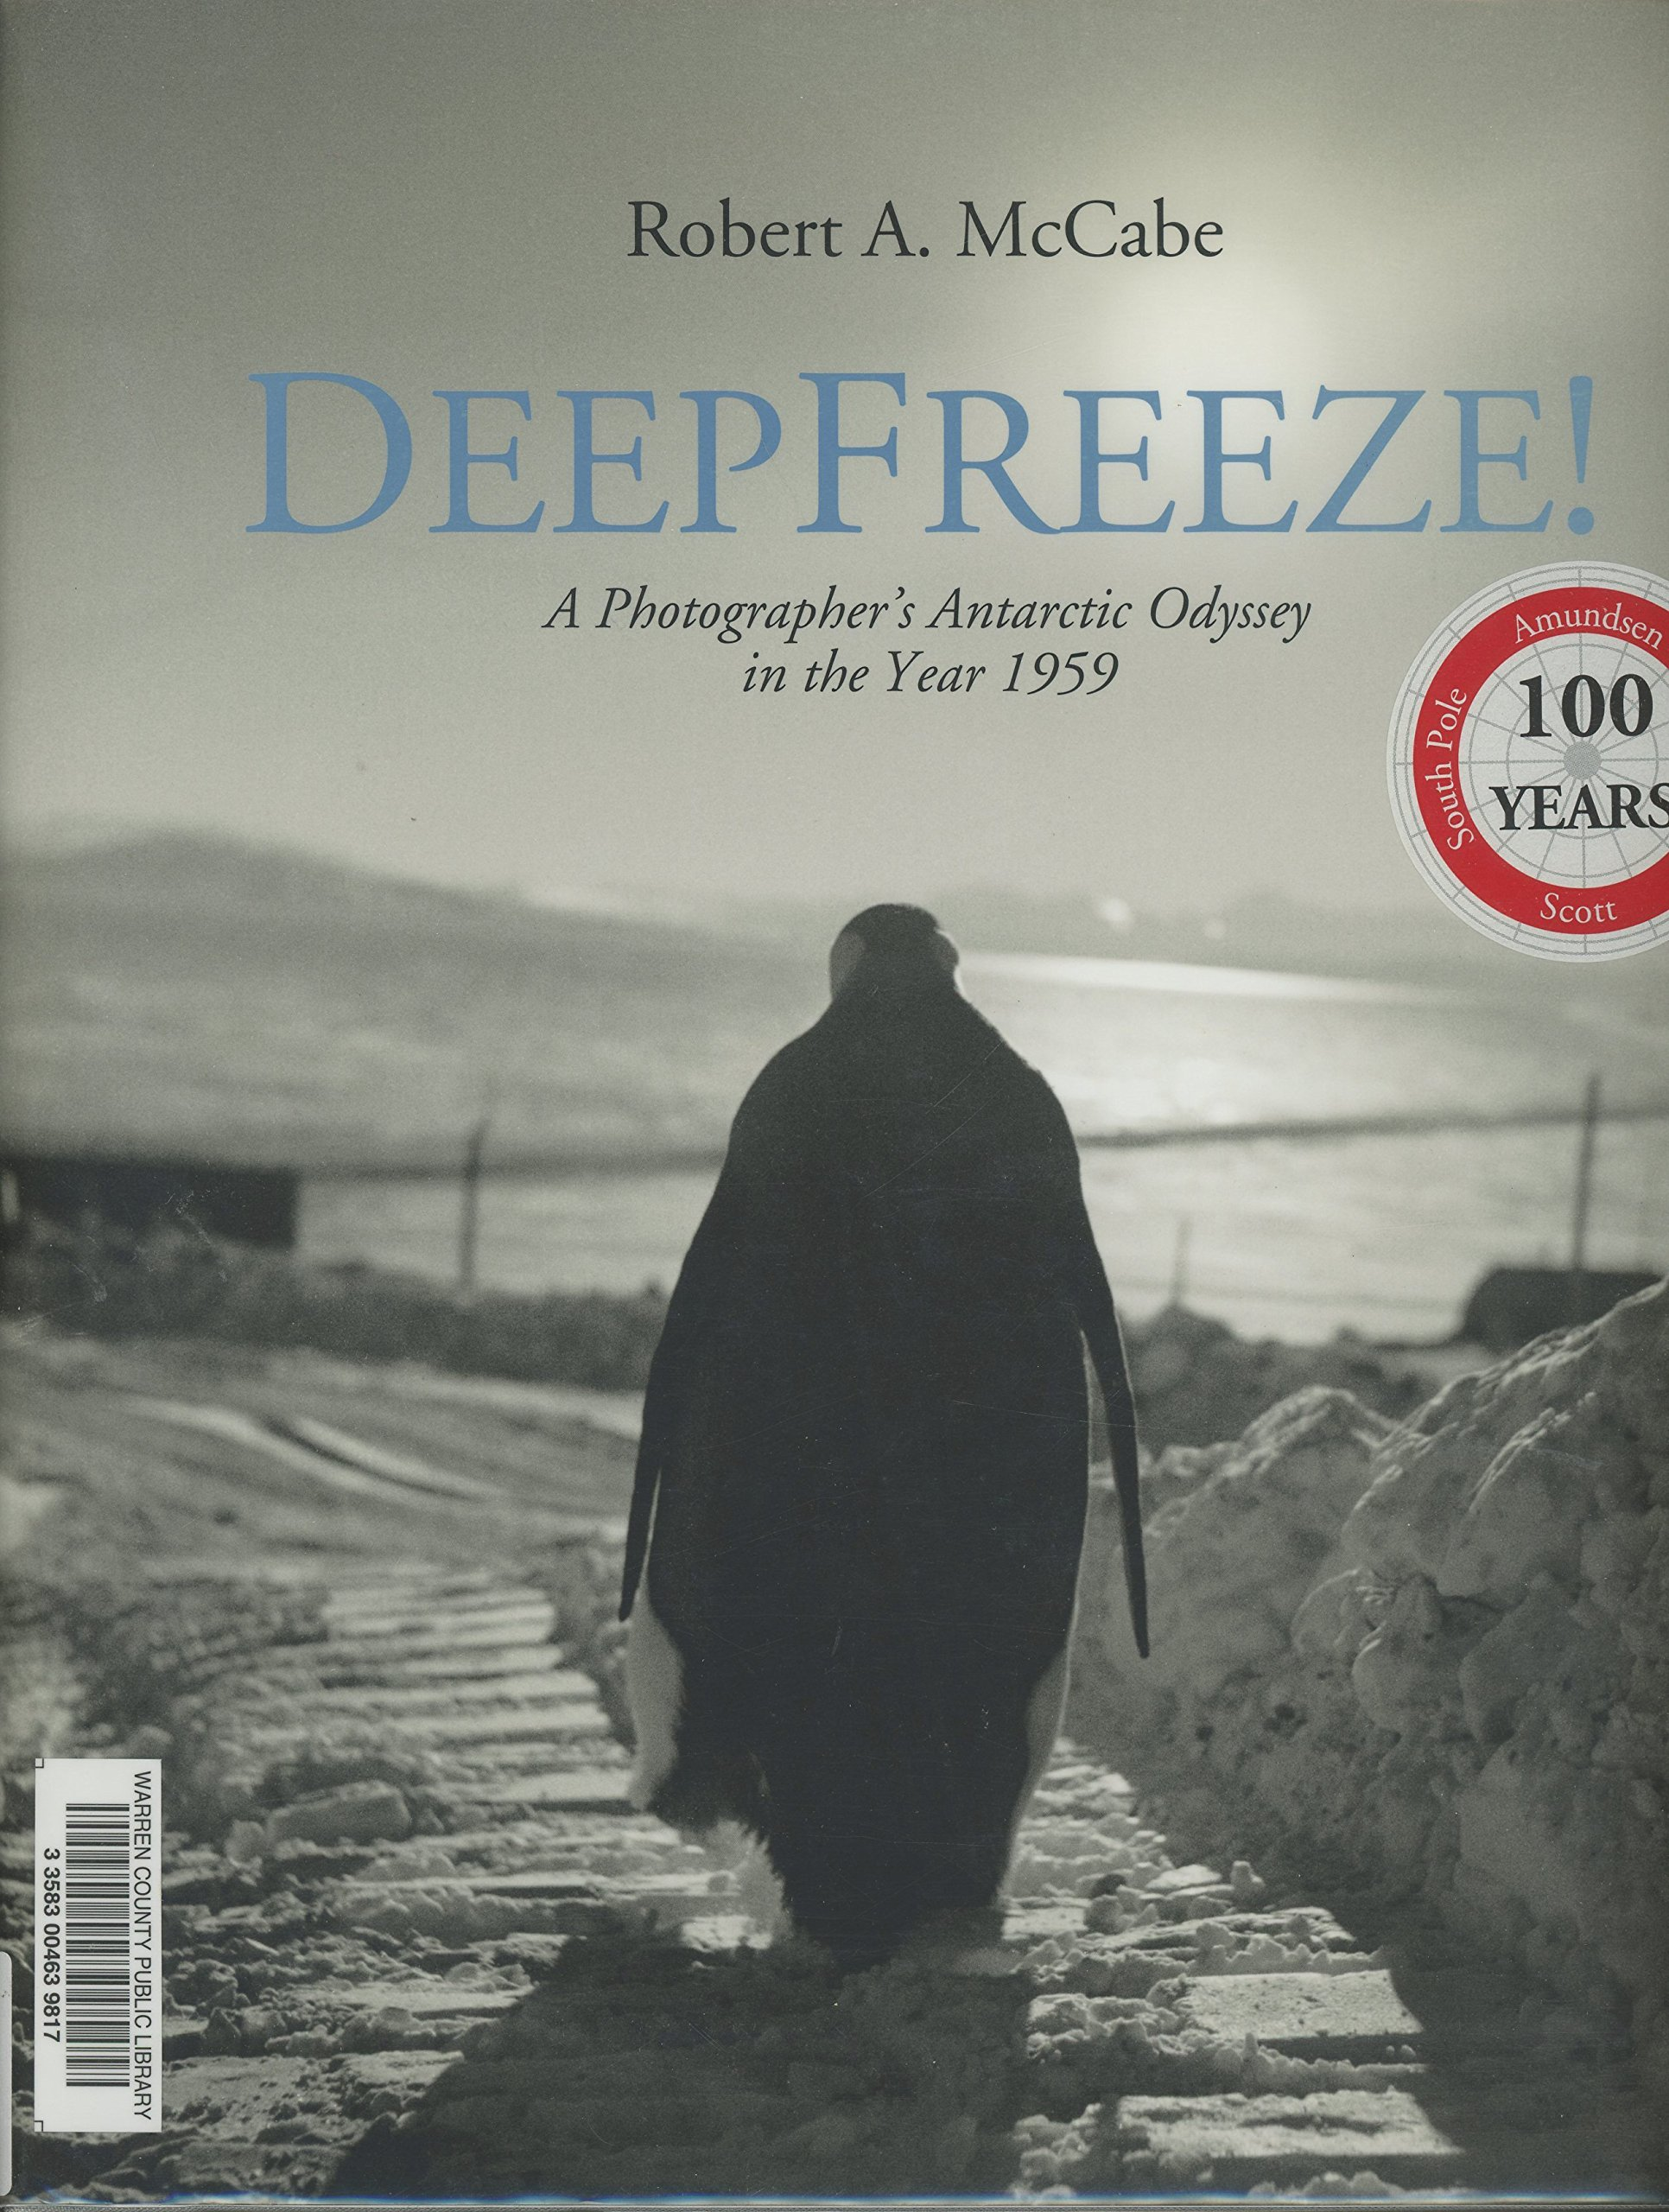 DeepFreeze! A Photographer's Antarctic Odyssey in the Year 1959